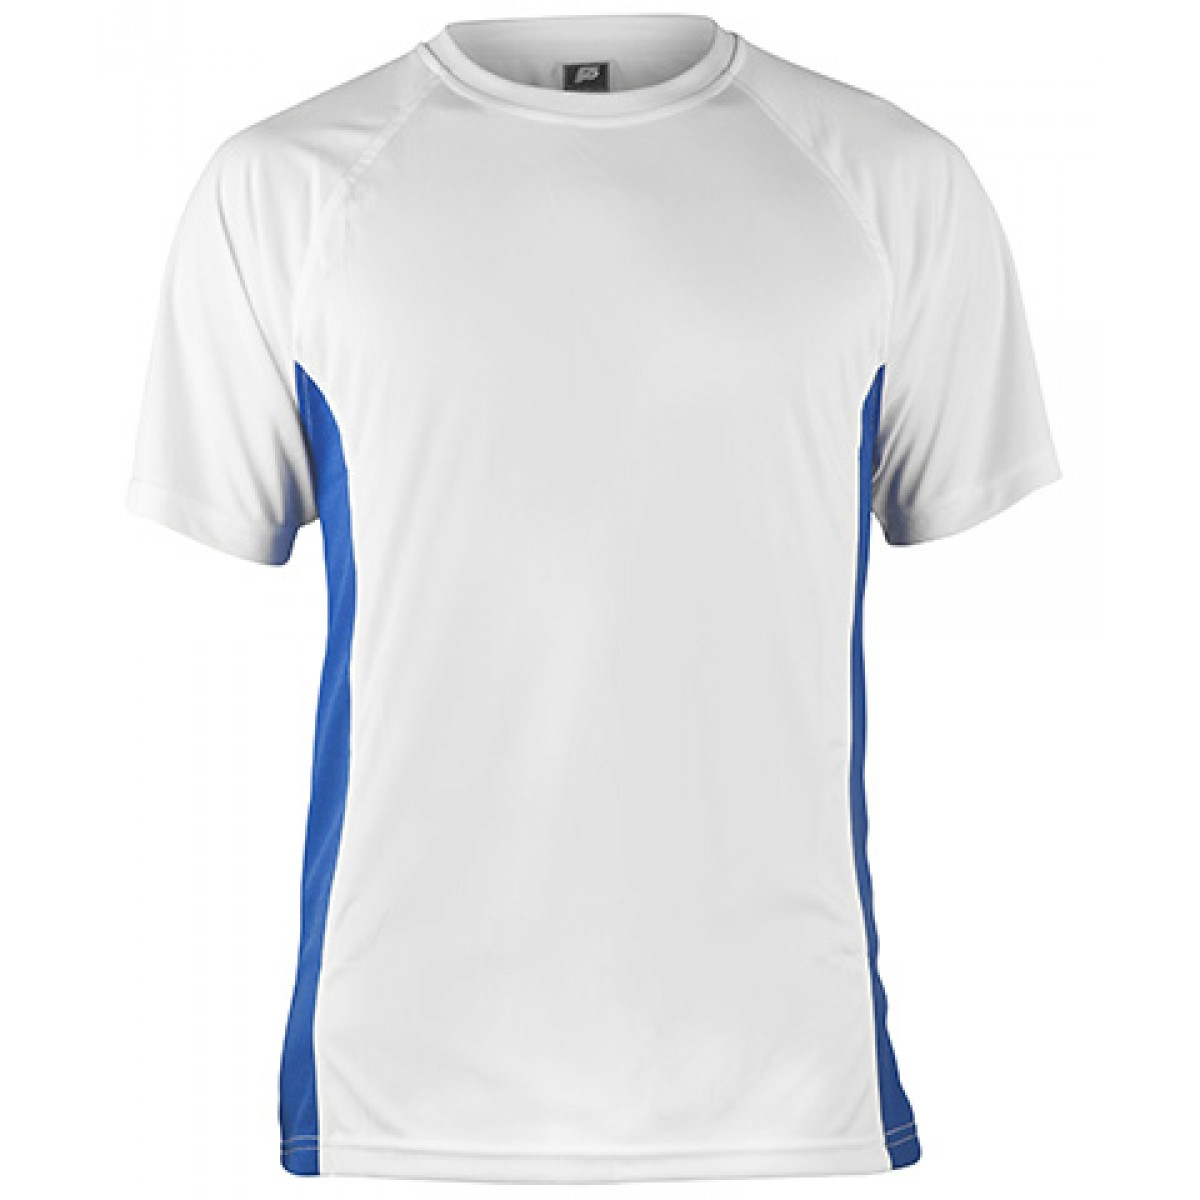 Short Sleeves Performance With Black Side Insert